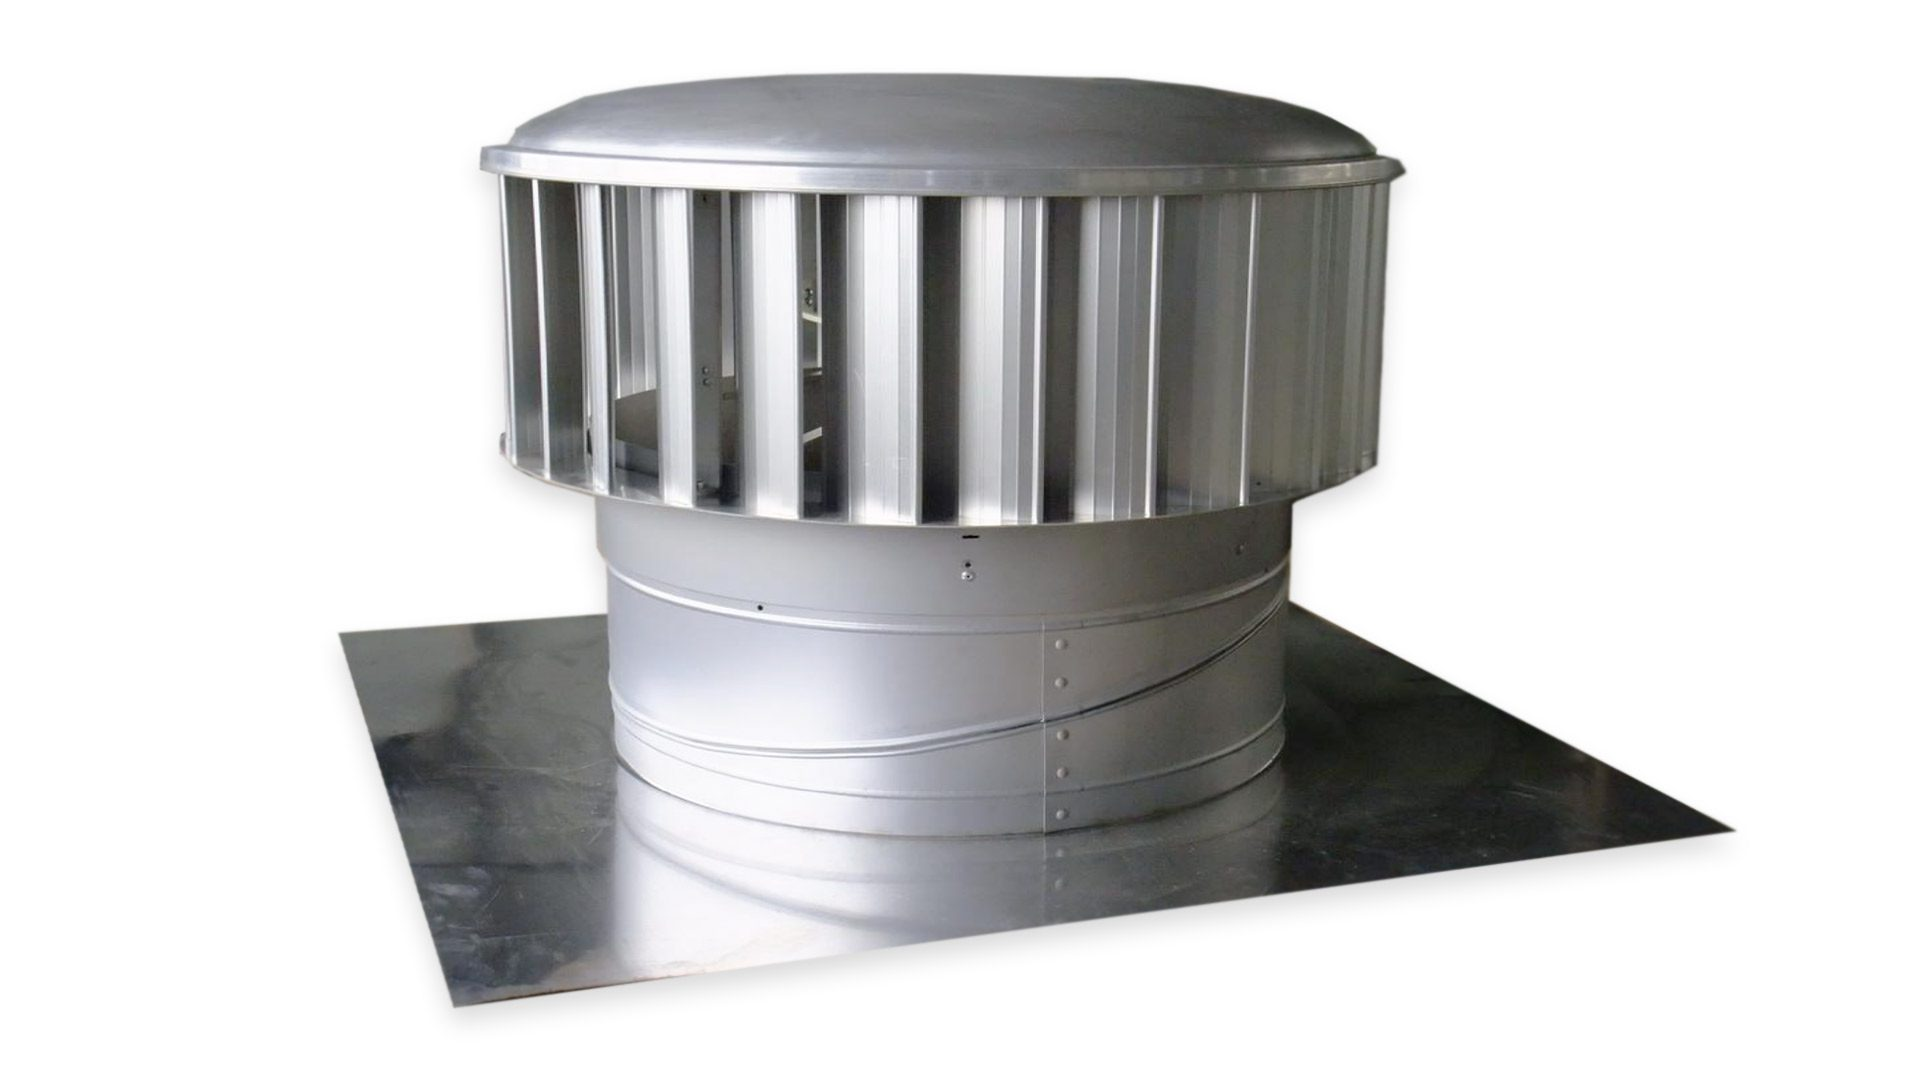 commercial-industrial-turbine-rotary-wind-driven-roof-ventilator-vent-vent1